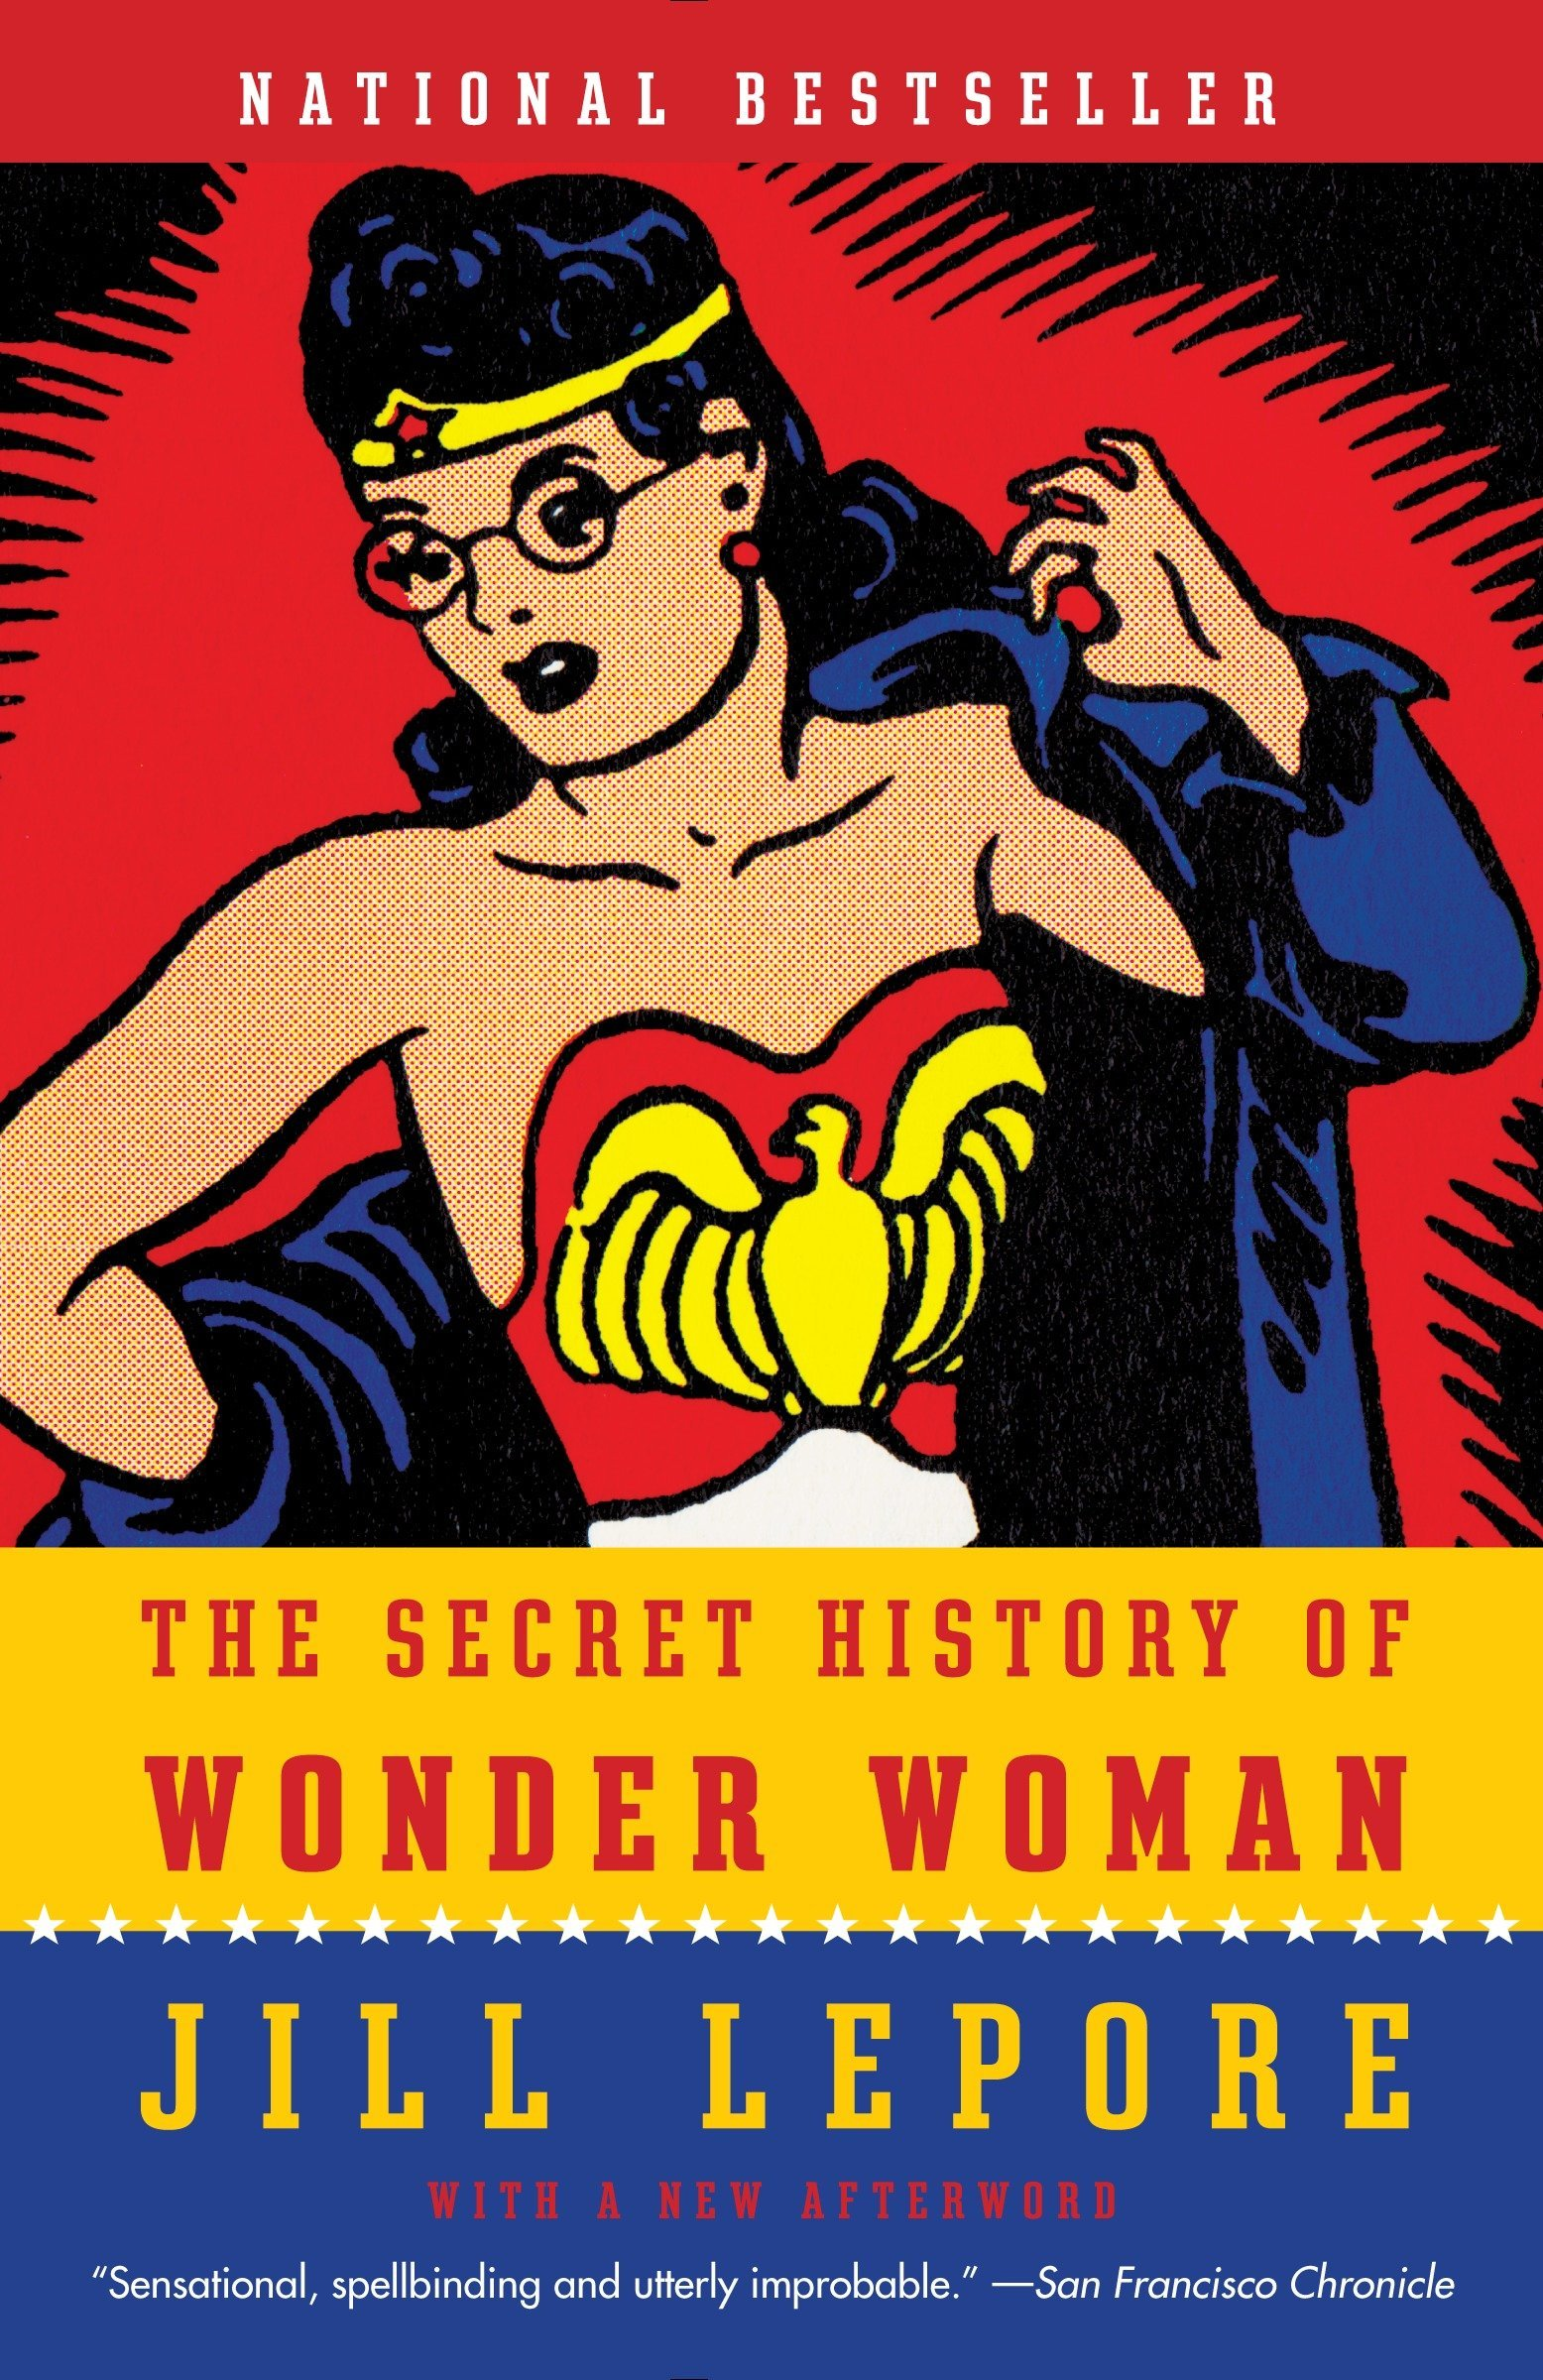 The Secret History of Wonder Woman book cover